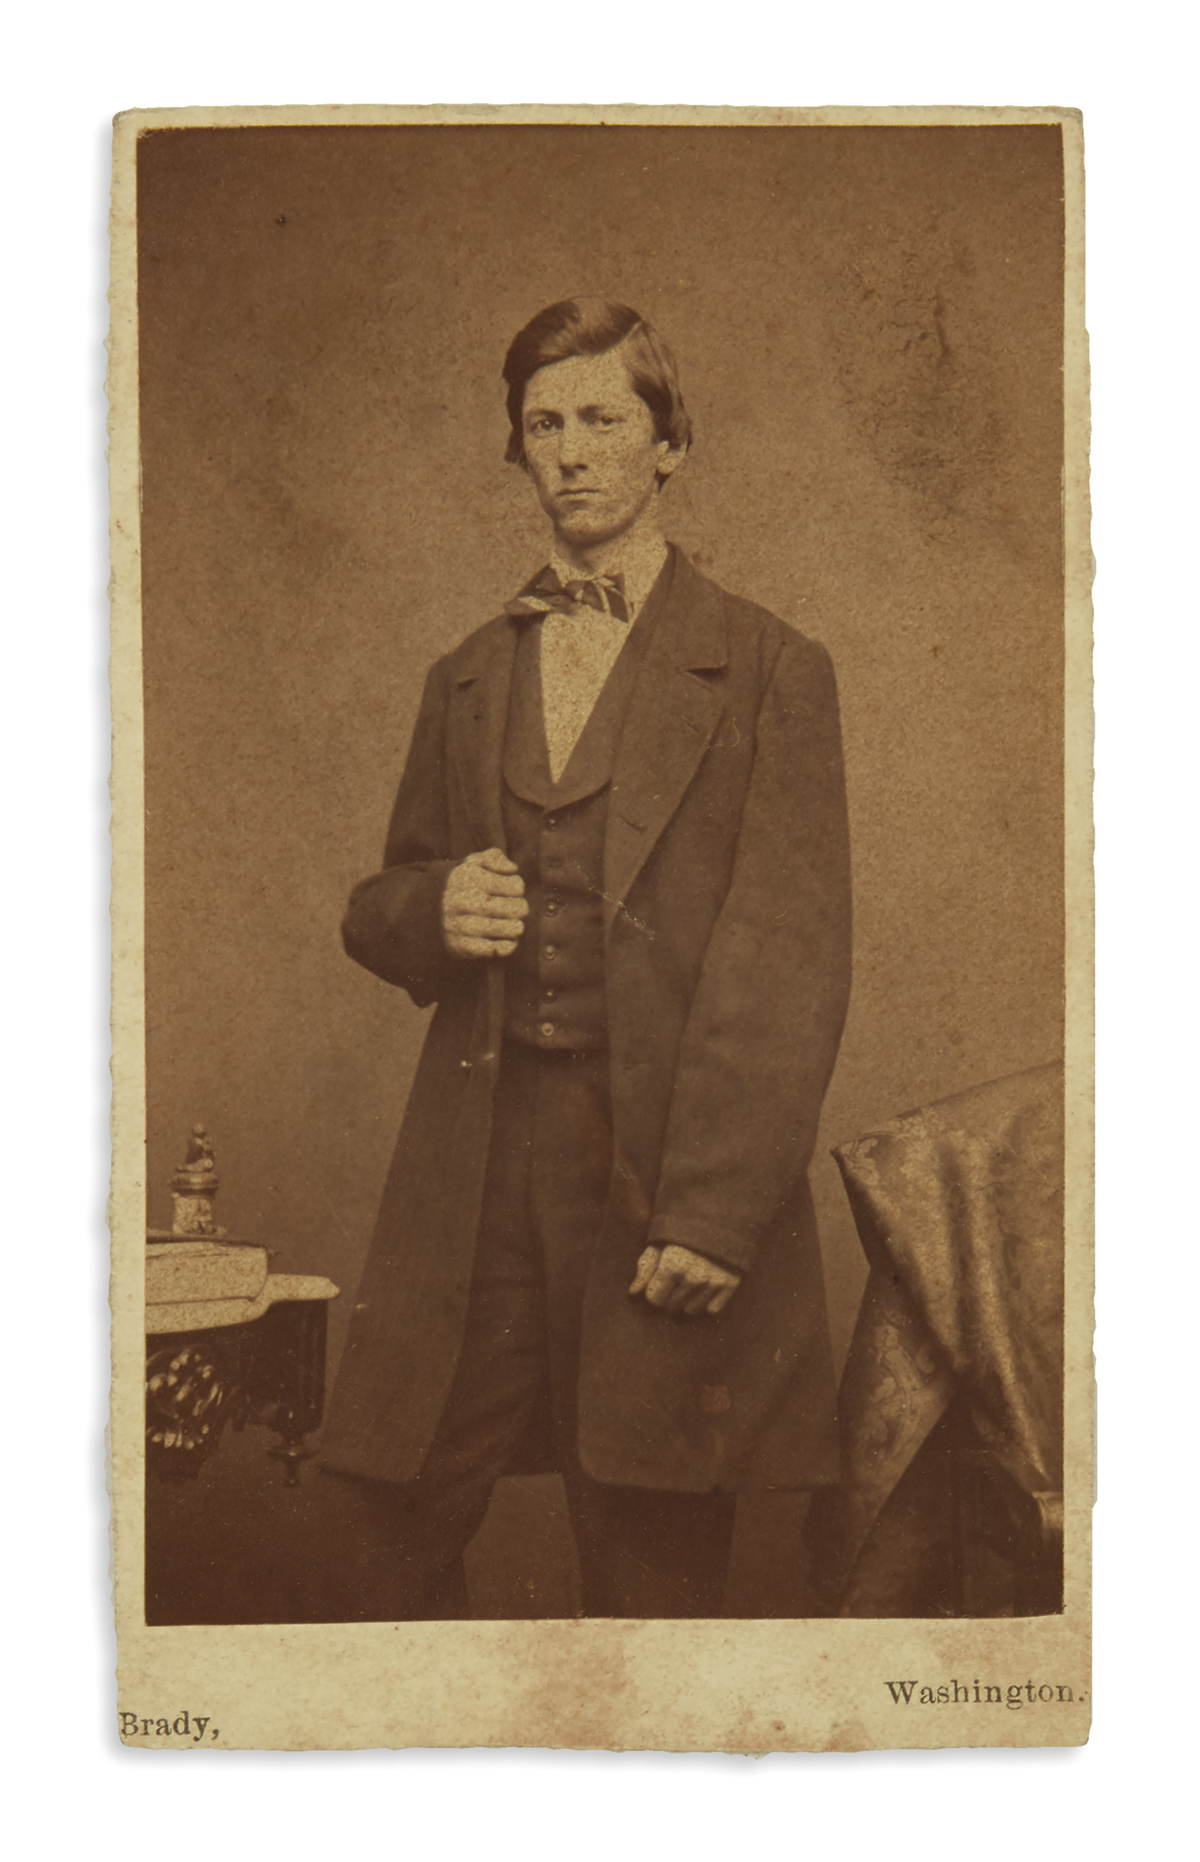 (CIVIL-WAR--MARYLAND)-Papers-of-the-McGregor-family-uneasy-p